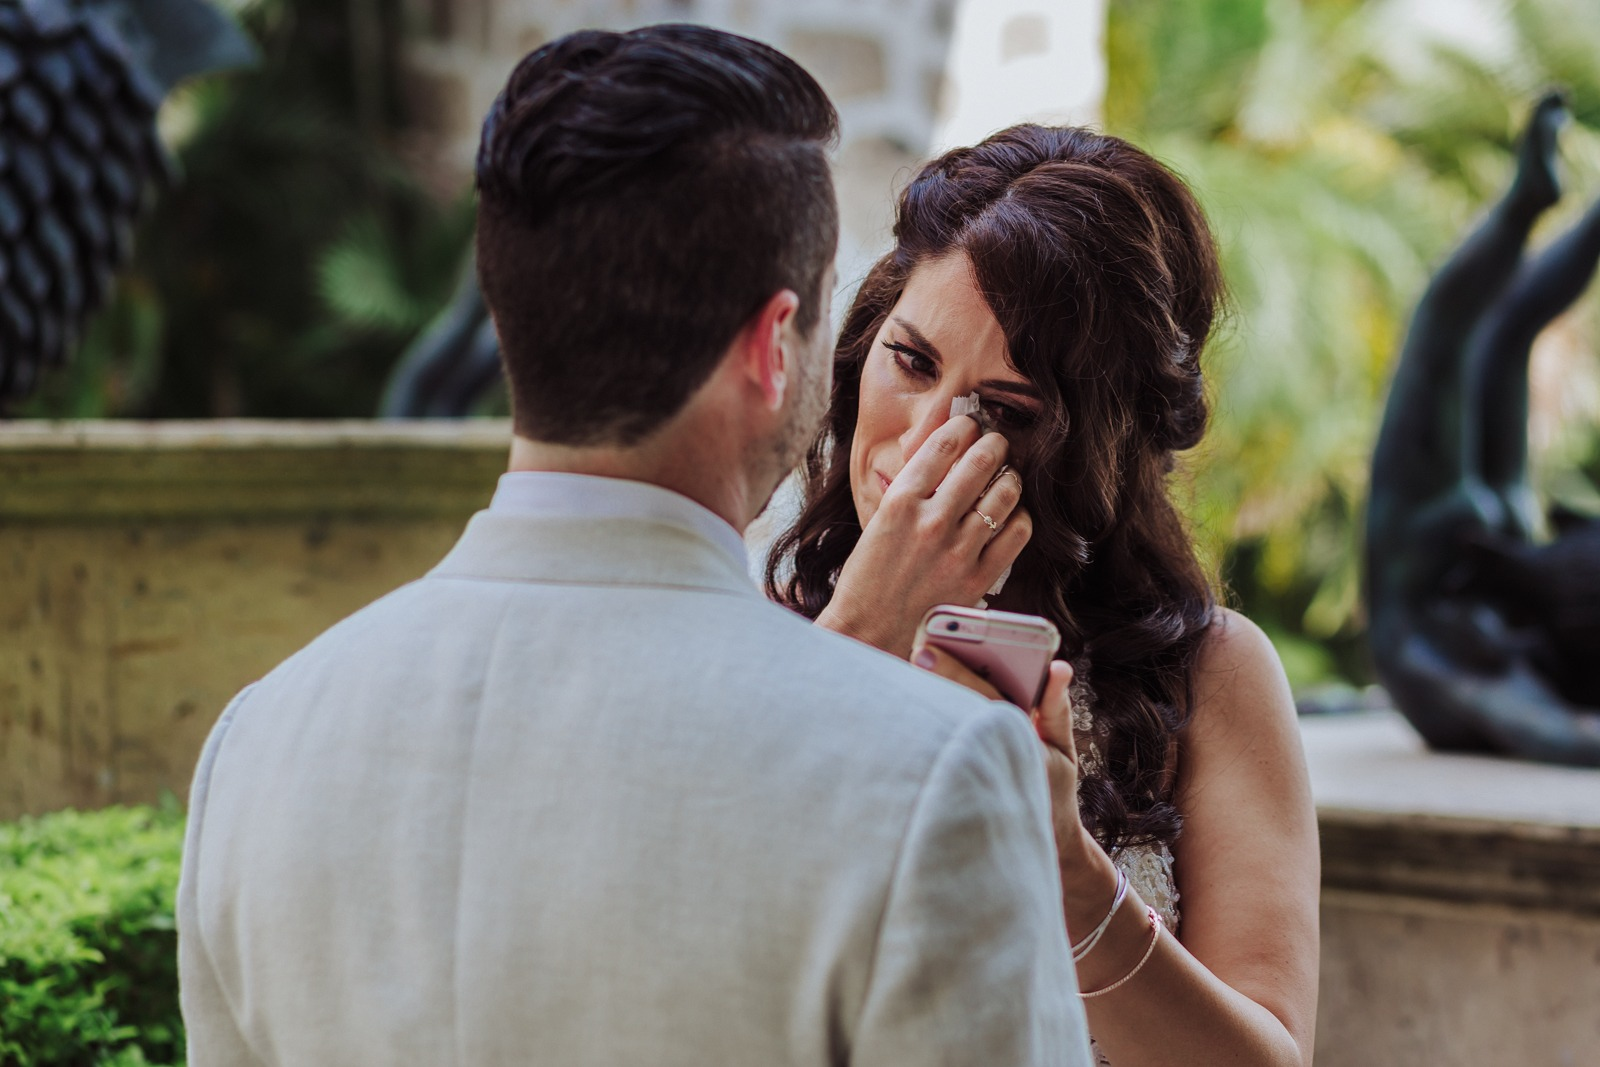 wedding-votes-bride-groom-tears-moment-true-vallarta